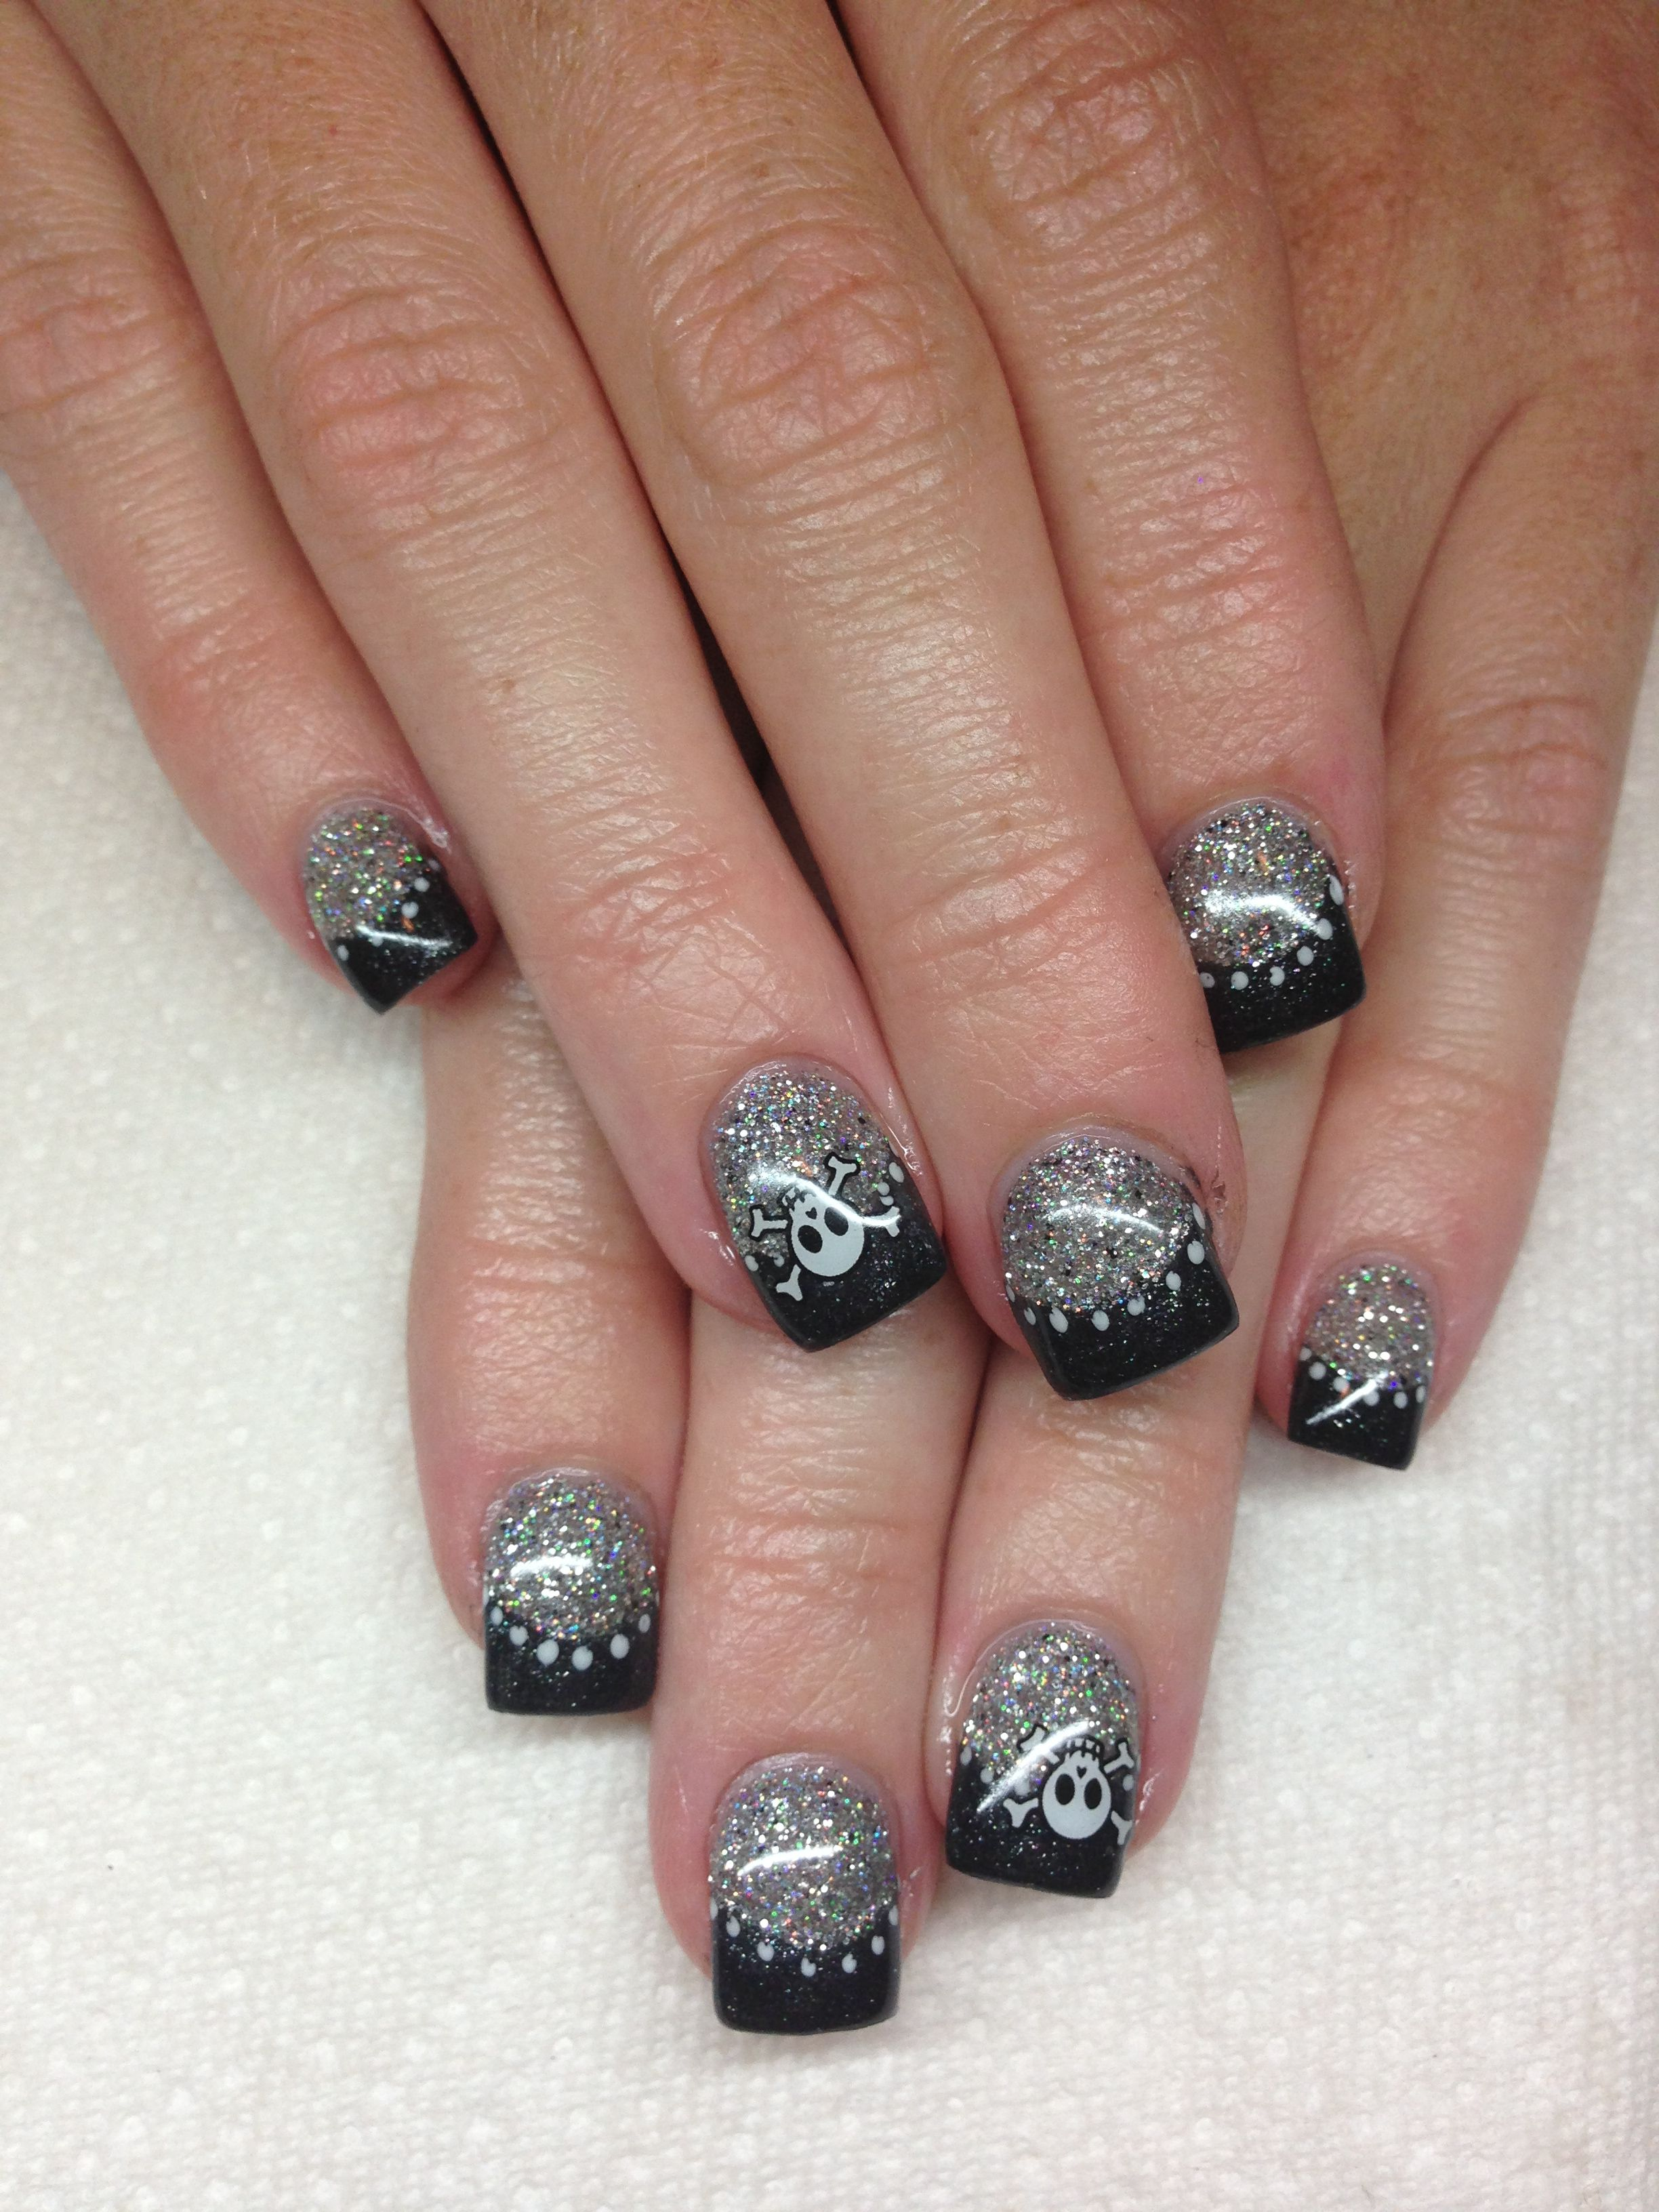 Gel nails. Silver glitter with black tips. Skull design ...